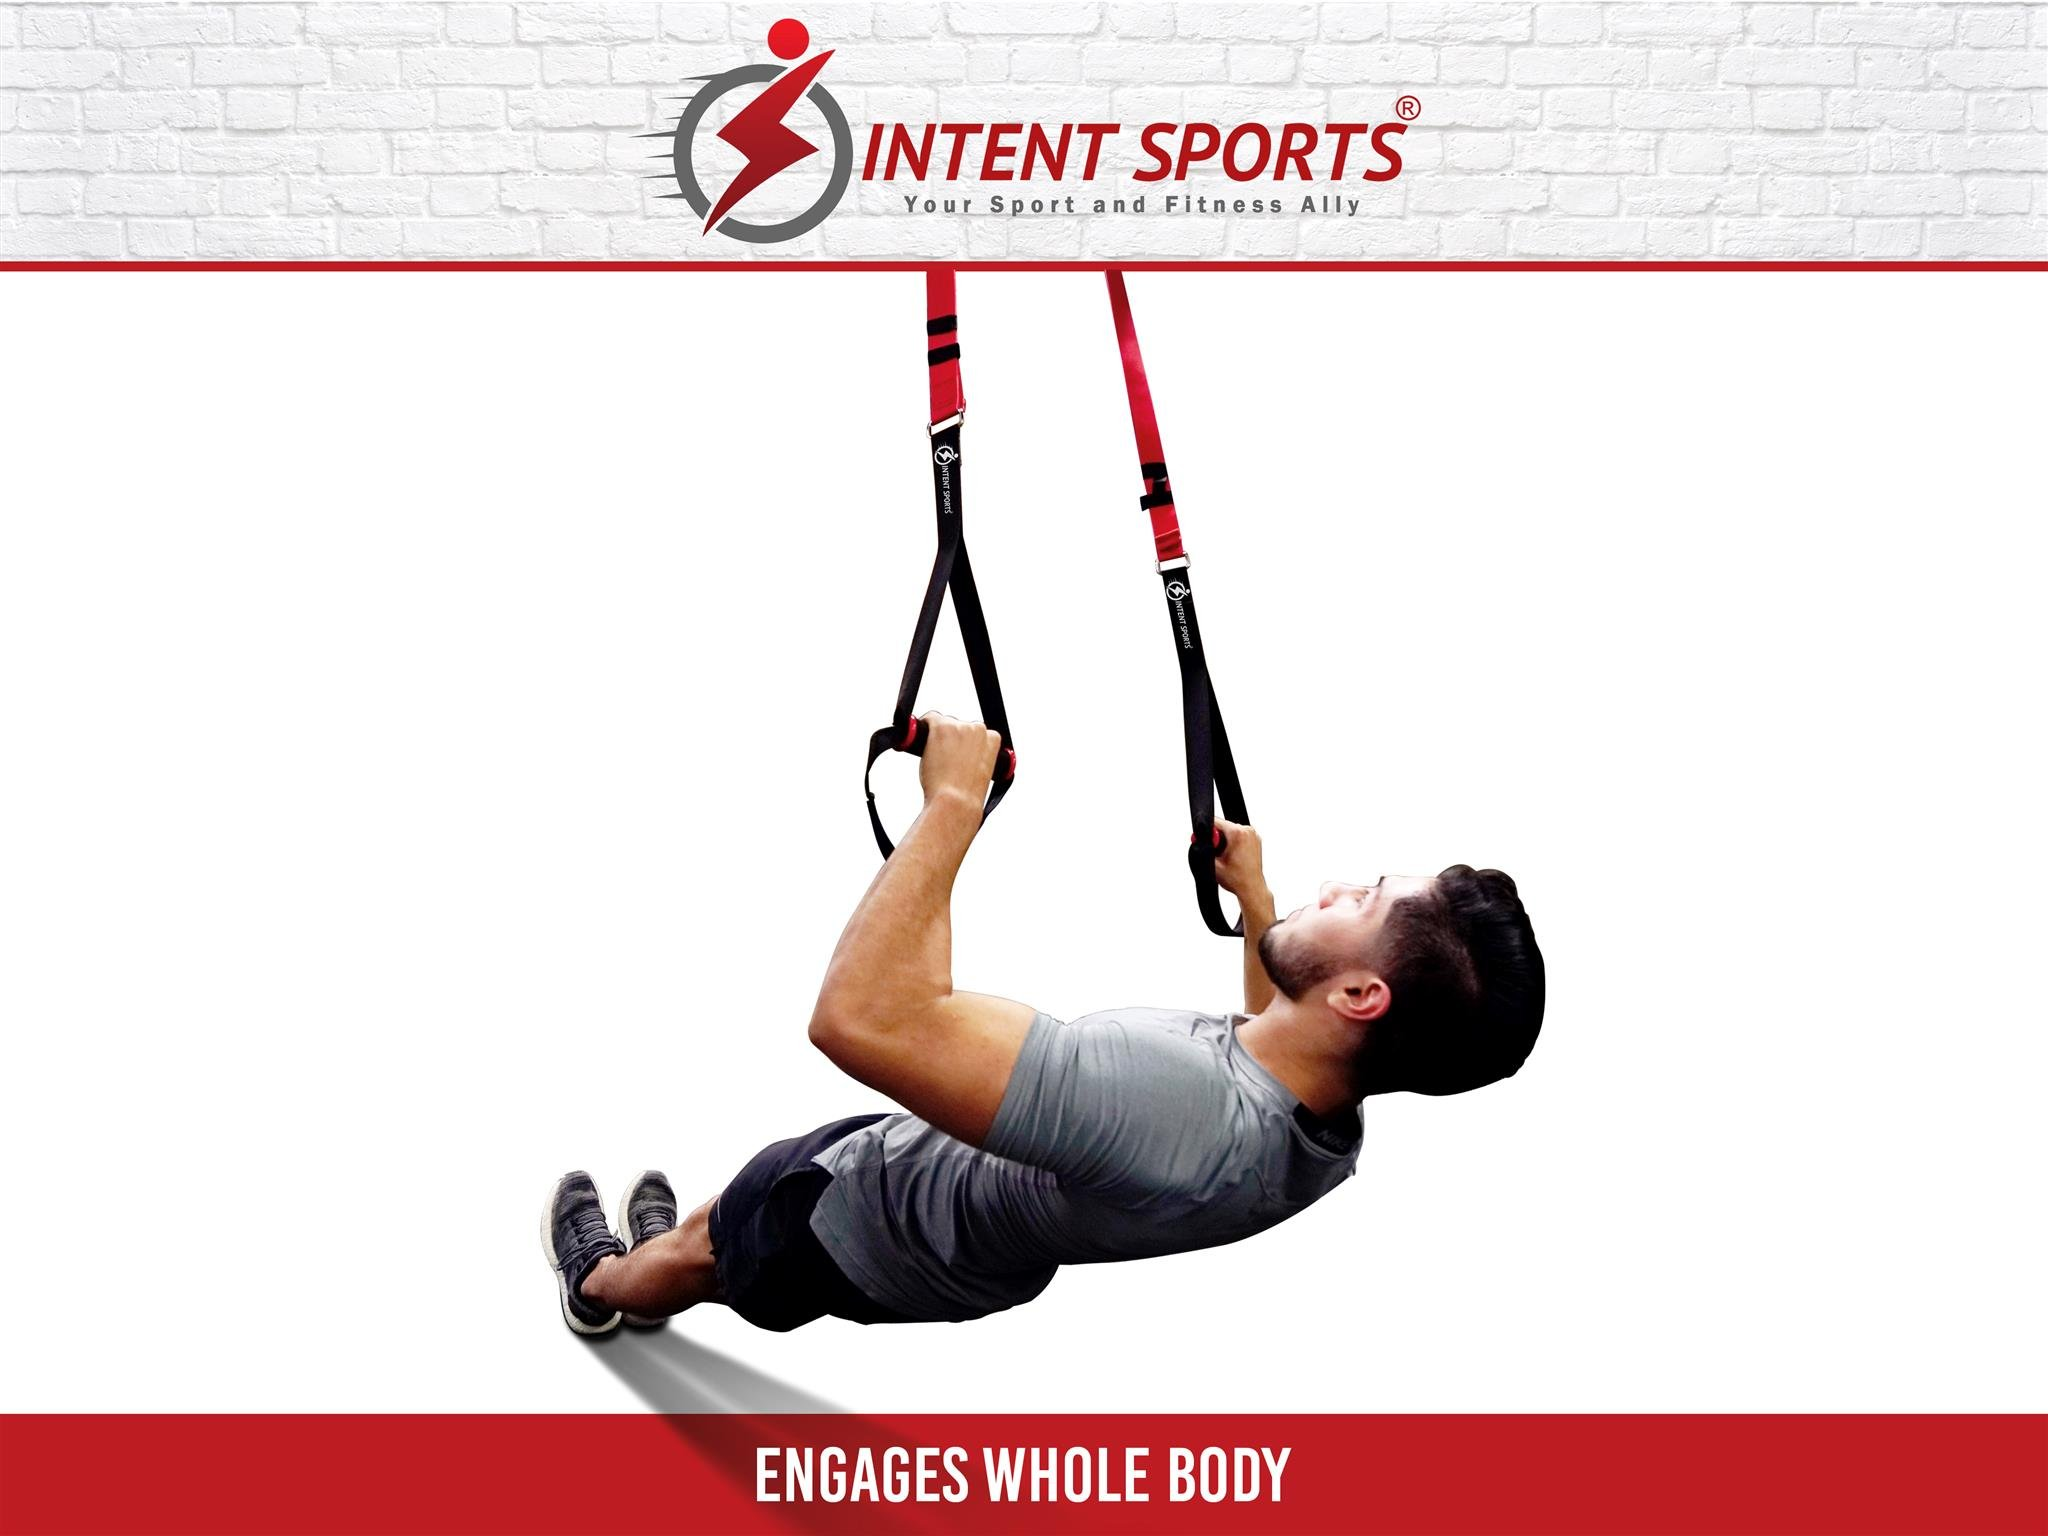 Bodyweight Fitness Resistance Trainer Kit with Pro Straps for Door, Pull up Bar or Anchor Point. Lean, Light, Extra Durable for Complete Body Workouts. E-Book ''12 Week Program'' (Patent Pending) by INTENT SPORTS (Image #7)